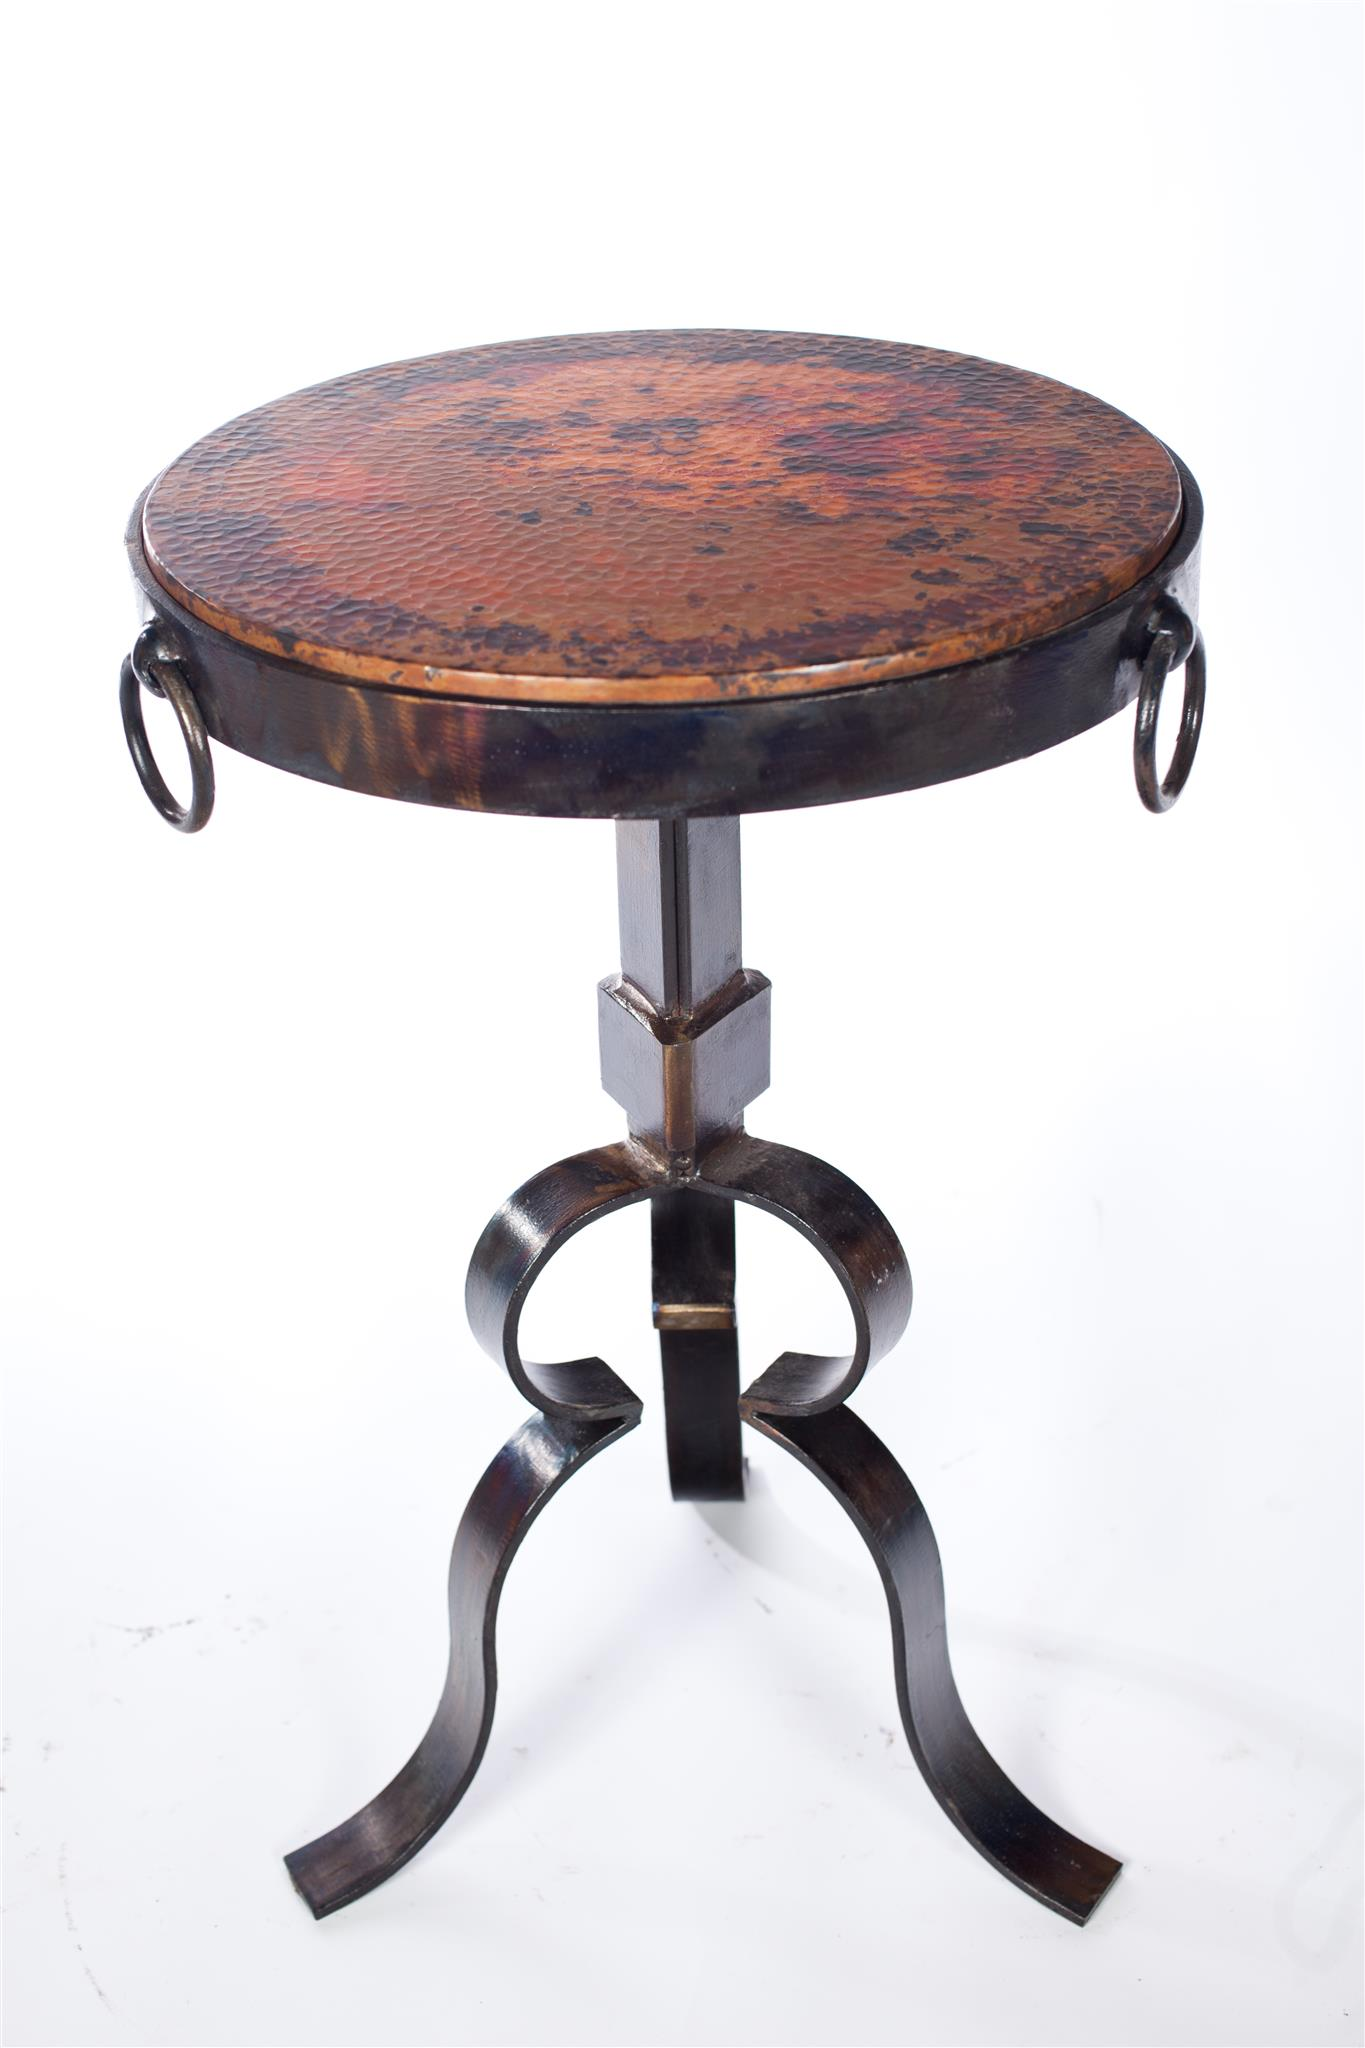 round iron accent table with hammered copper top boulevard urban metal living kitchen room furniture dale tiffany glass lovell target wrought patio expanding teal storage cabinet